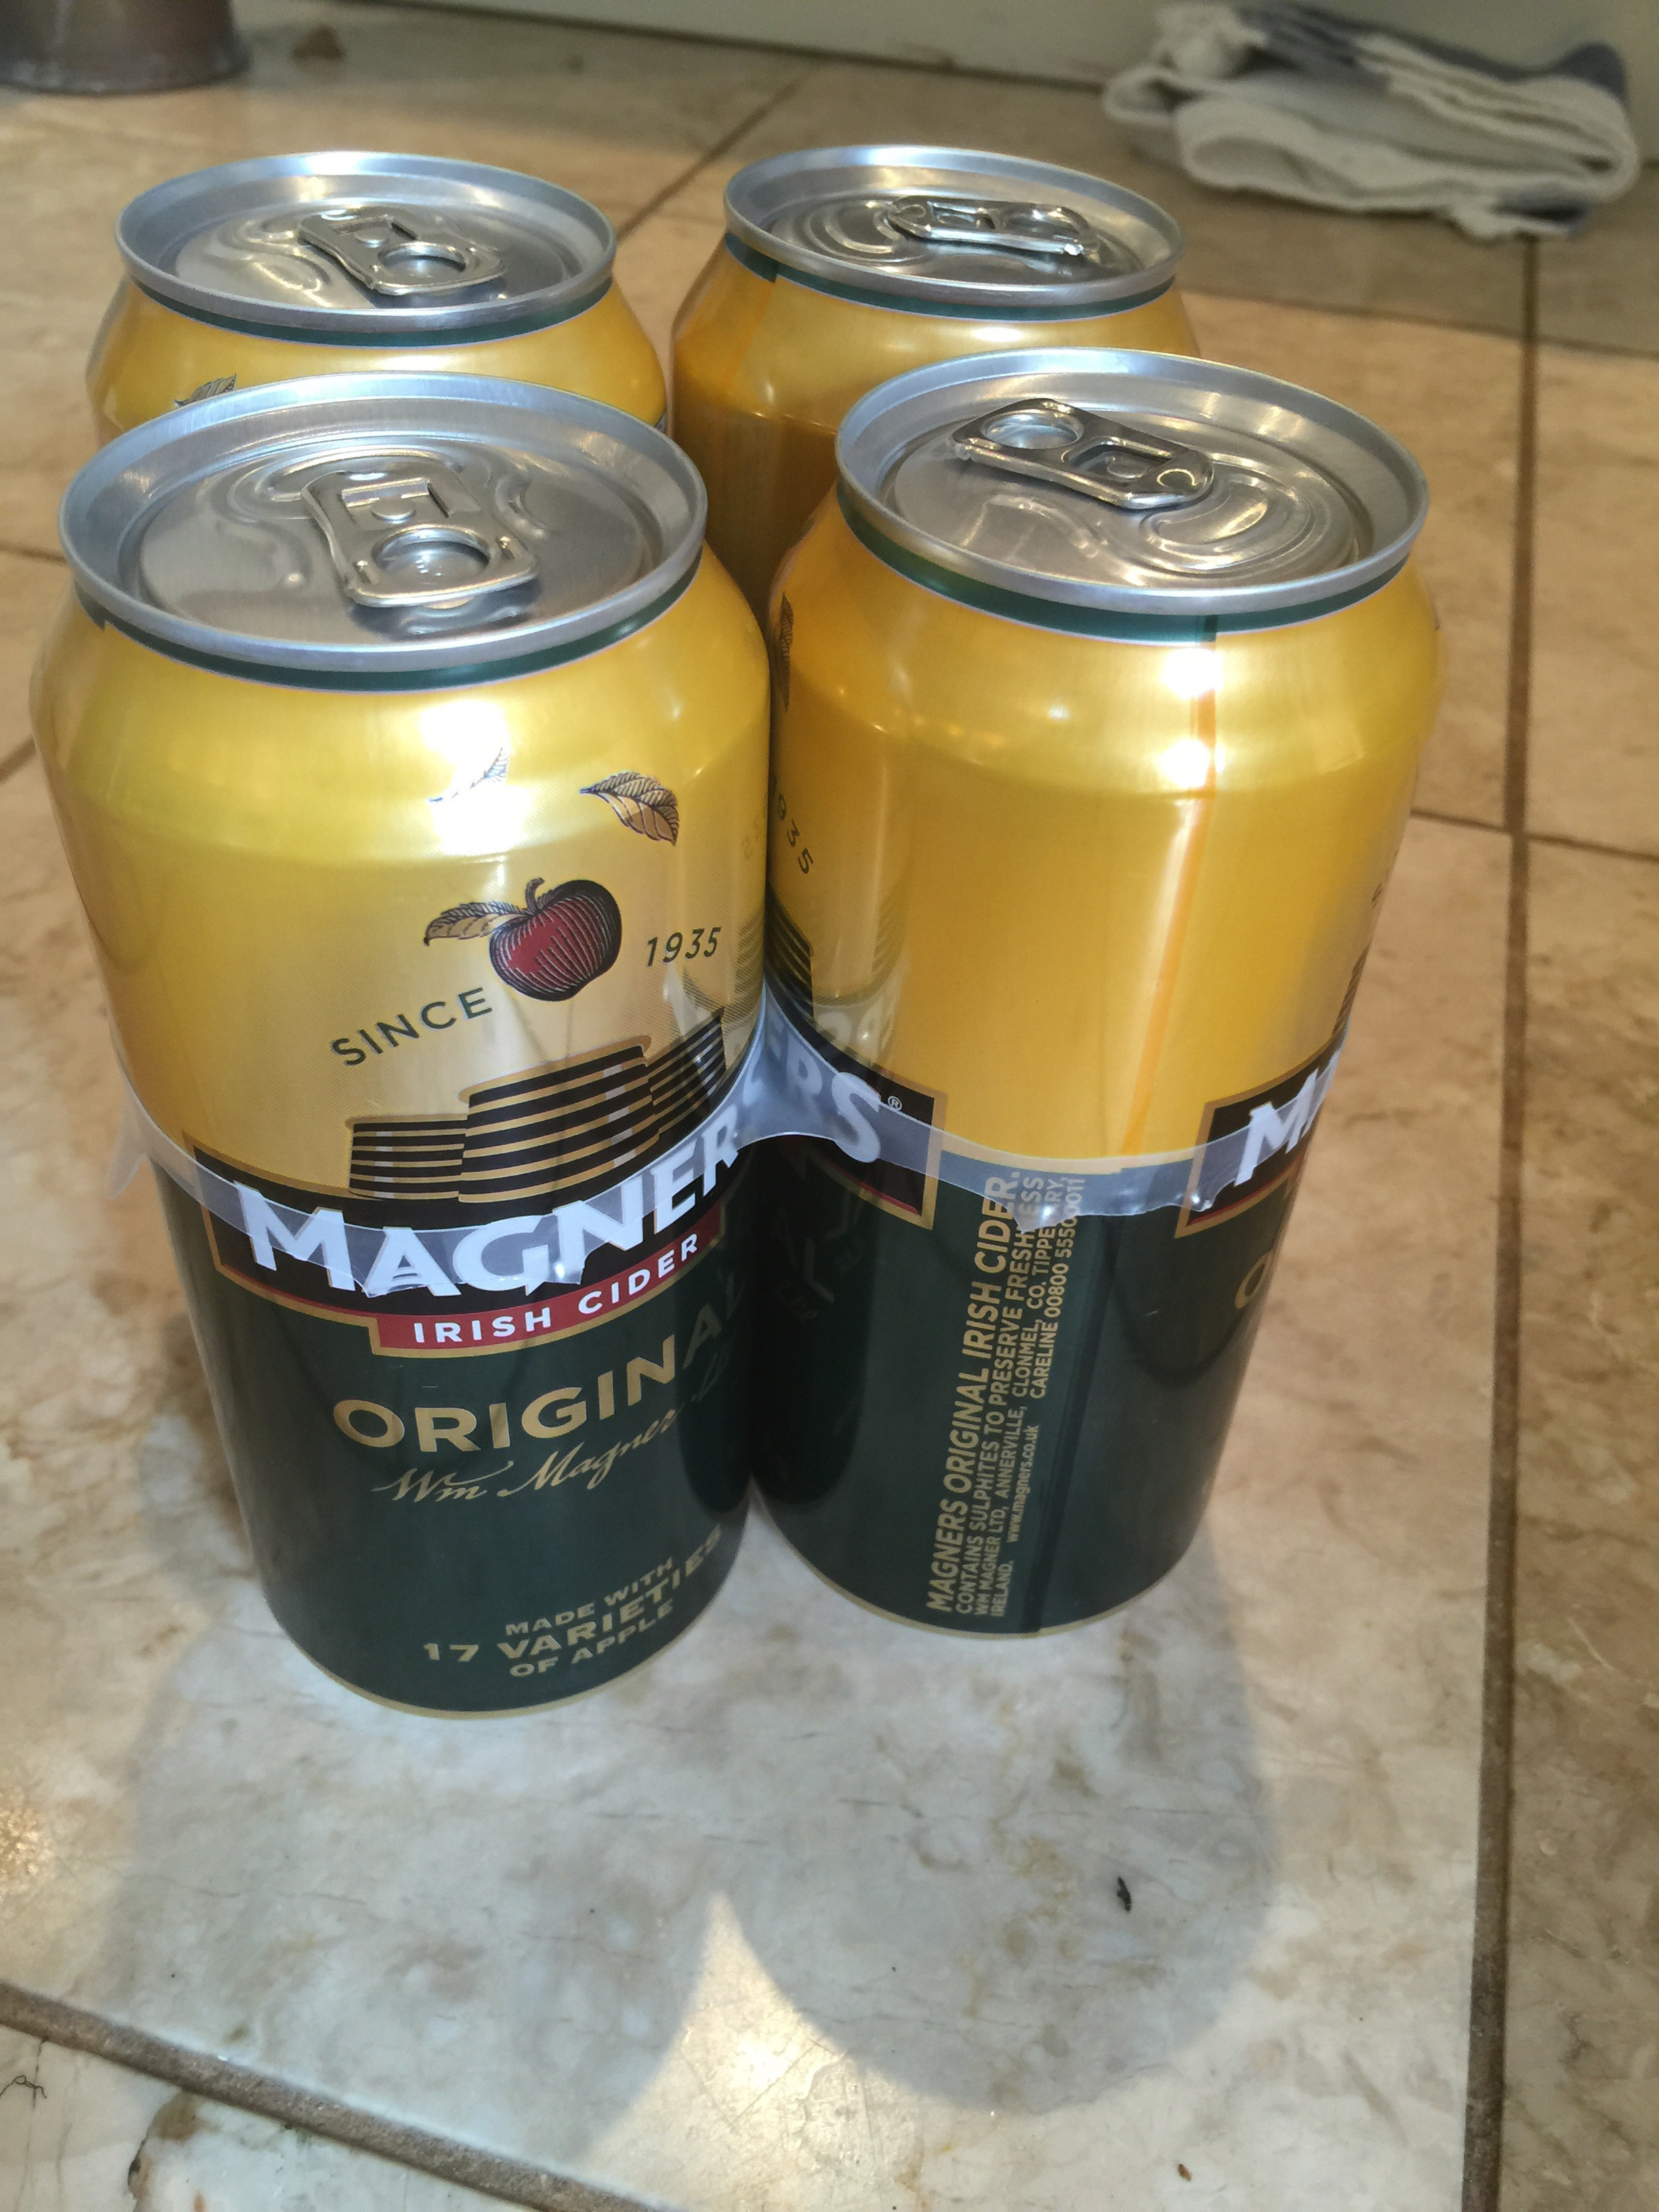 4 cans of magners